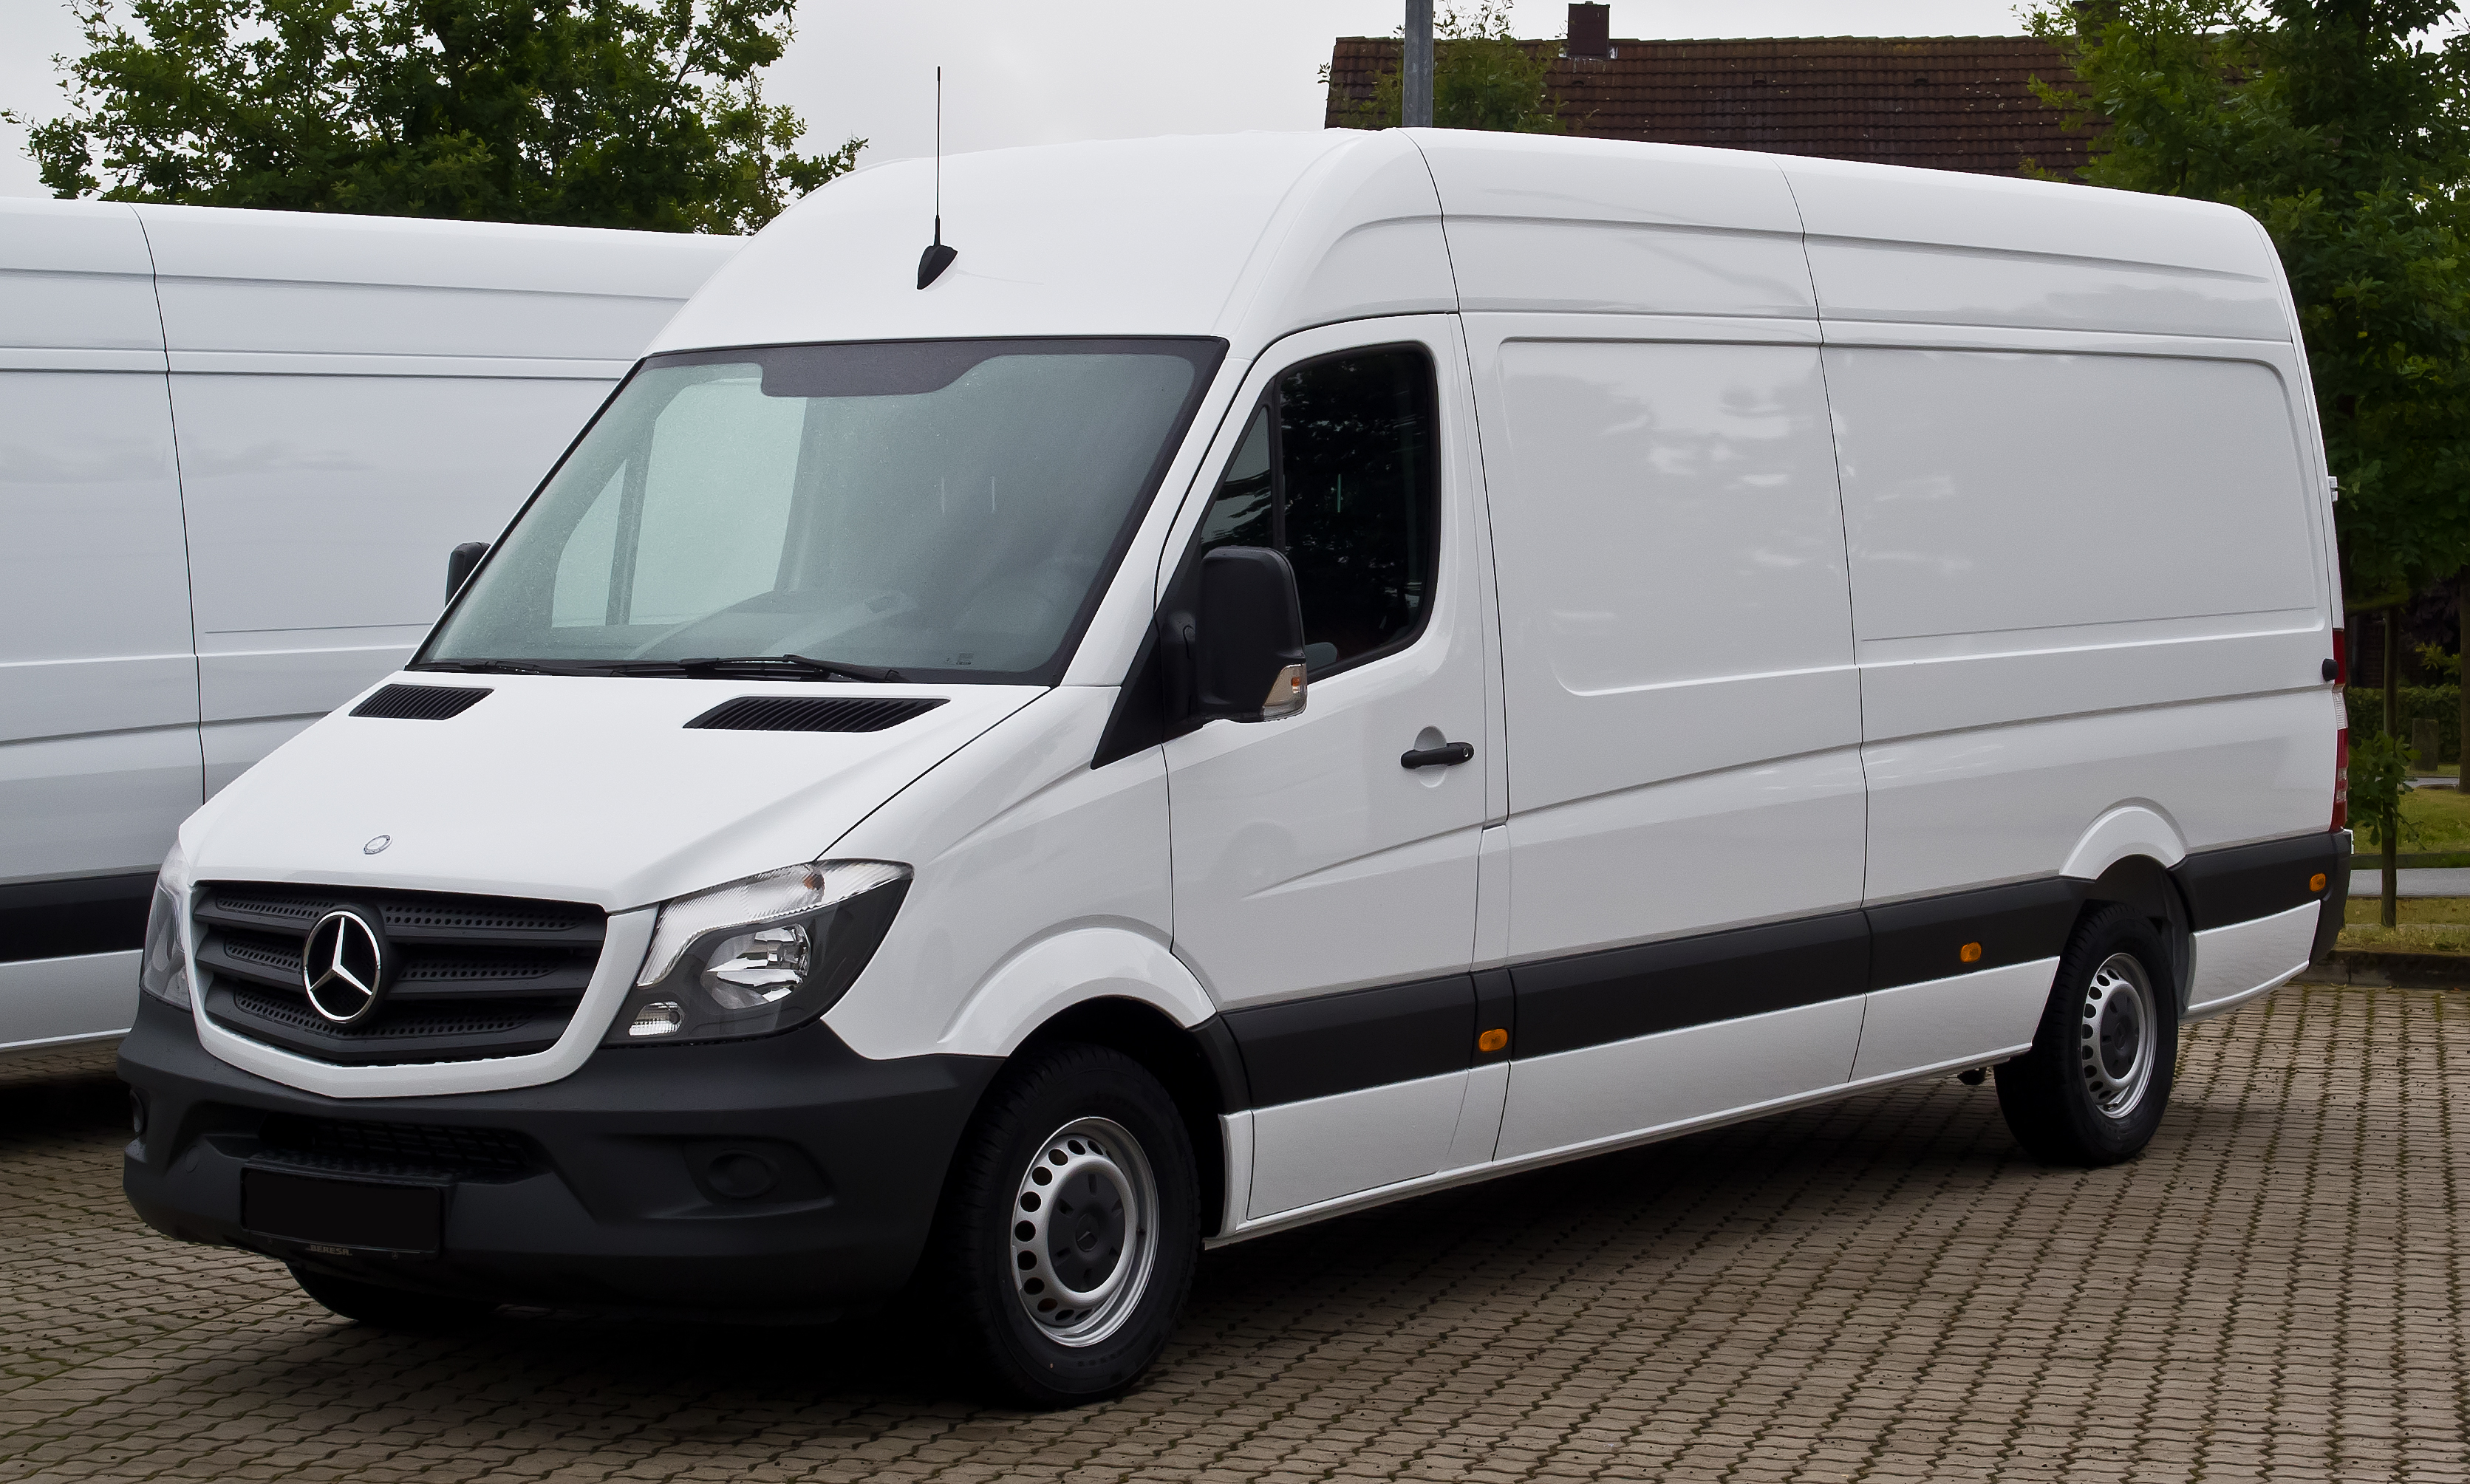 1000 ideas about mercedes sprinter on pinterest benz for Mercedes benz sprinter camper van